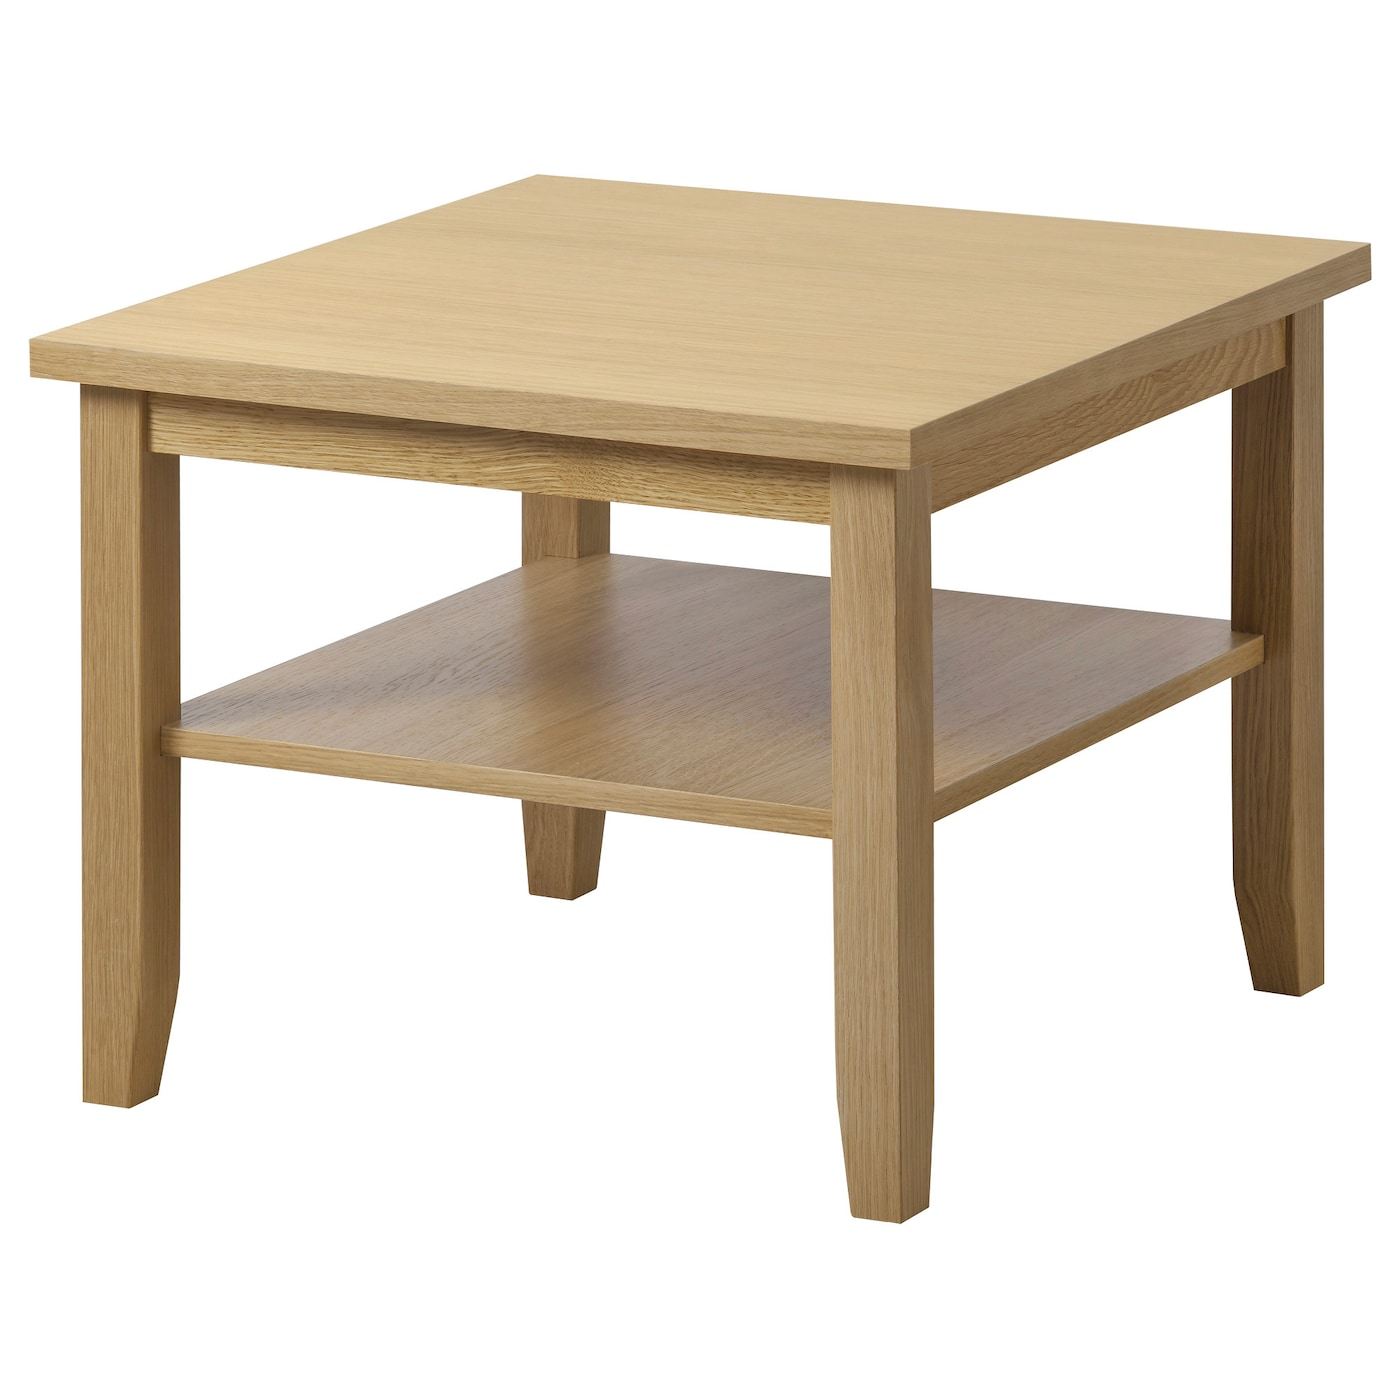 Skoghall coffee table oak 55x55 cm ikea Ikea coffee tables and end tables